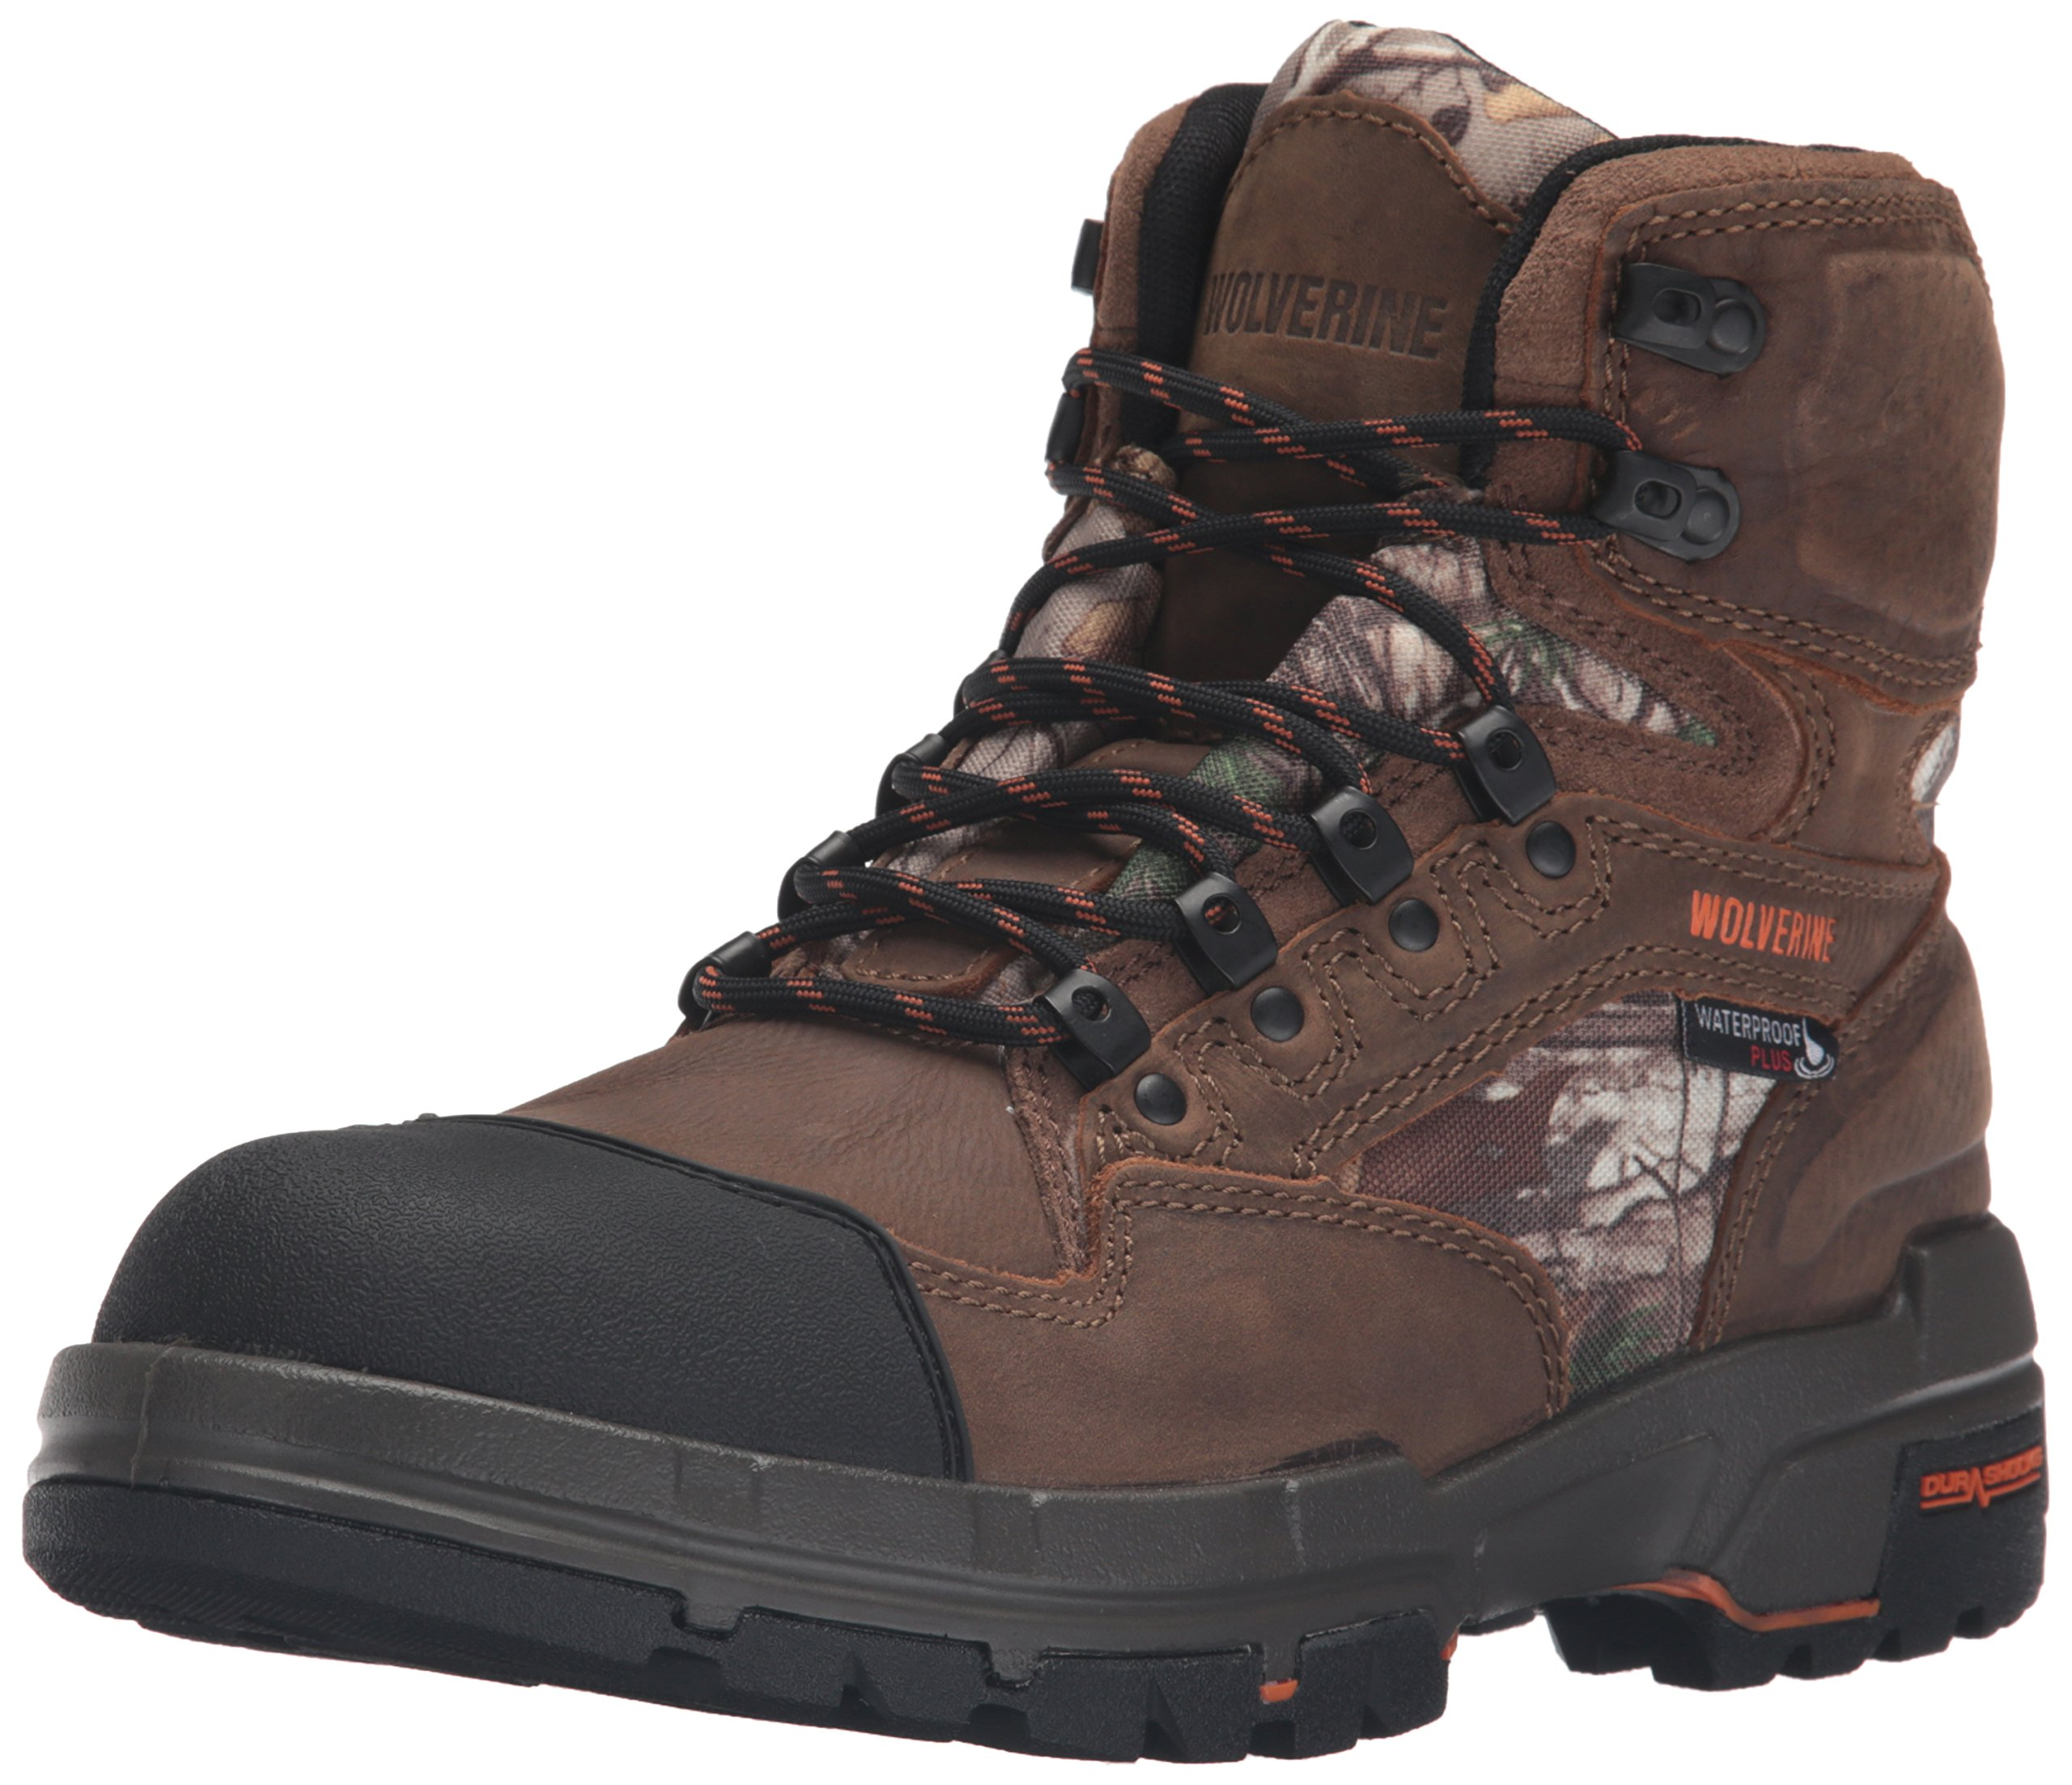 Wolverine Men's Claw Insulated Waterproof Hunting Boot, Brown/Realtree, 8 M US